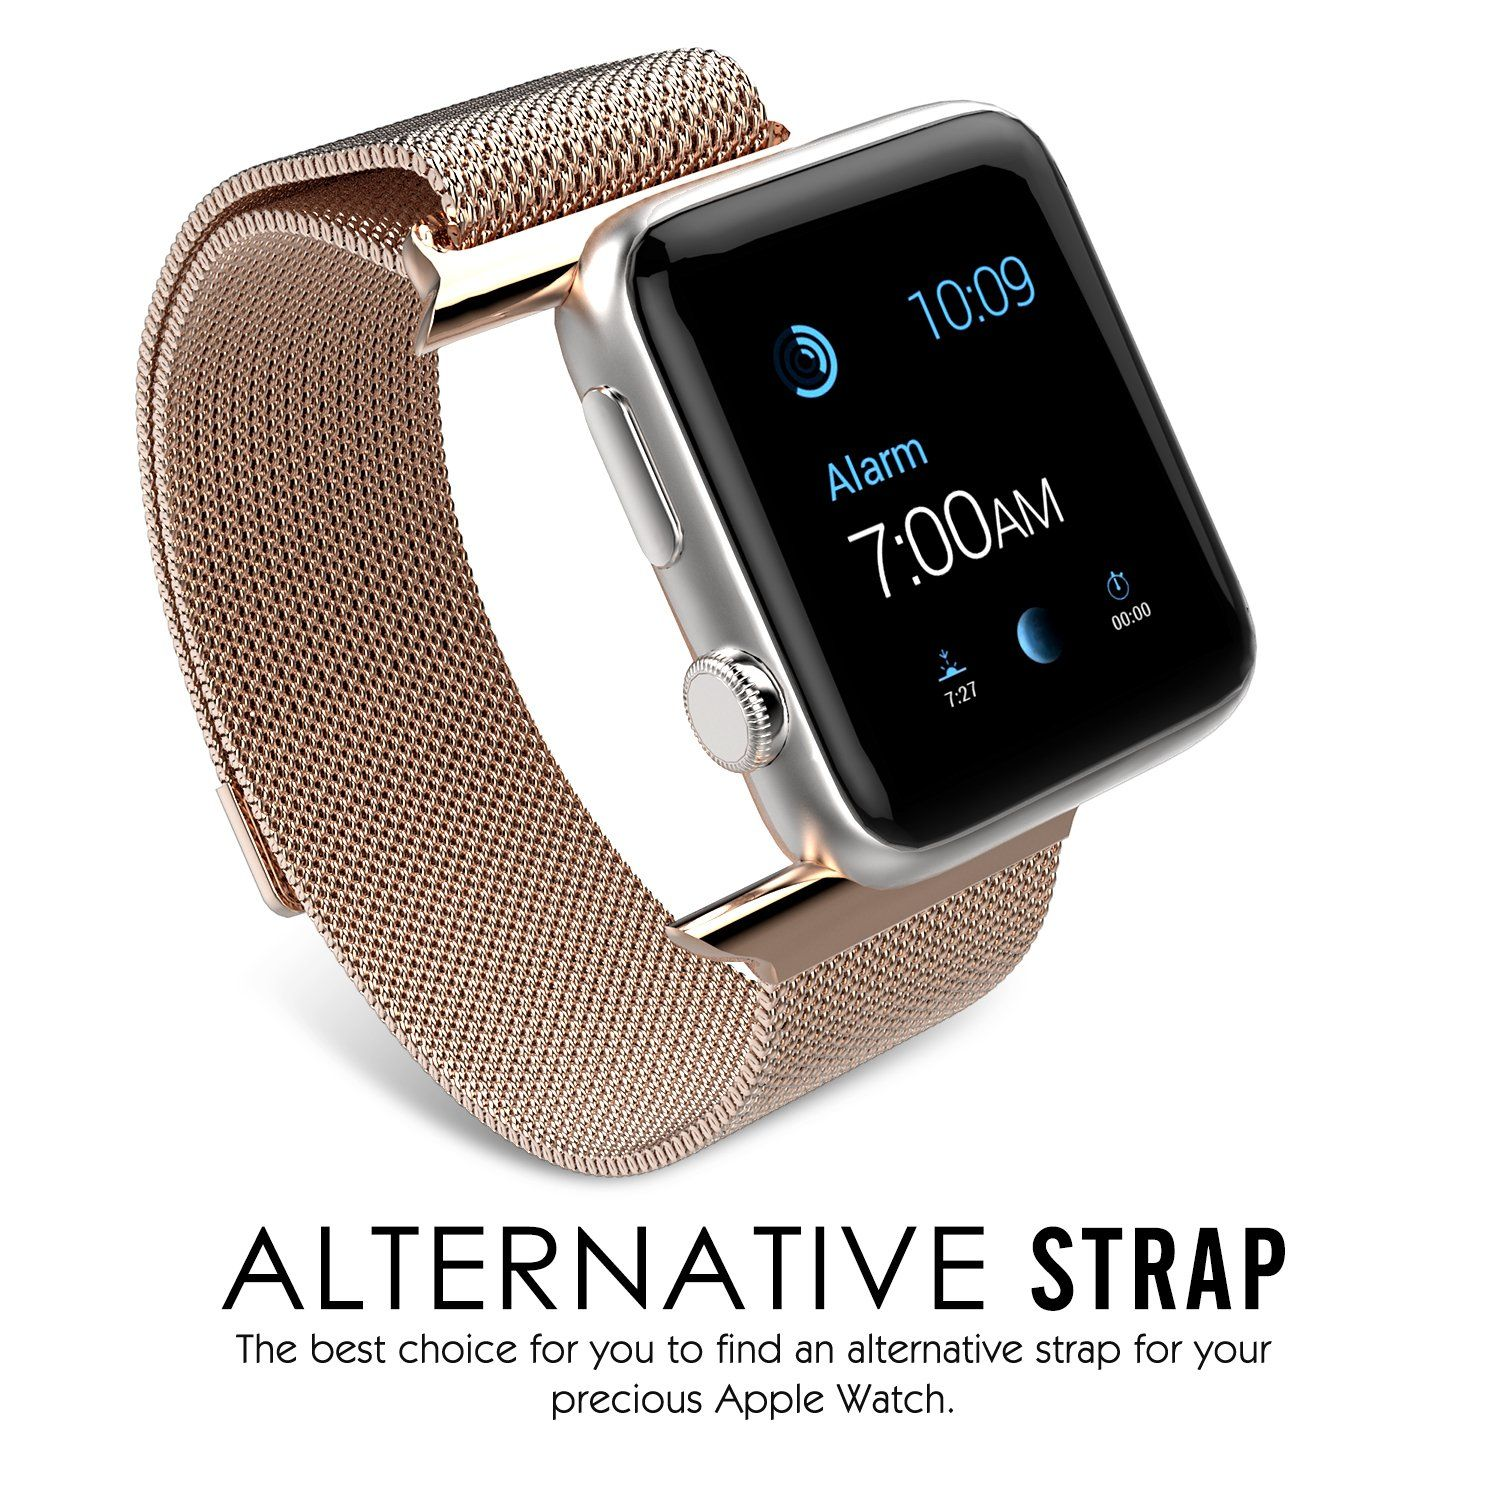 Amazon.com: Apple Watch Band, MoKo Milanese Loop Stainless Steel Bracelet Smart Watch Strap for iWatch 38mm All Models with Unique Magnet Lock, No Buckle Needed - Rose GOLD (Not Fit iWatch 42mm Version 2015): Cell Phones & Accessories